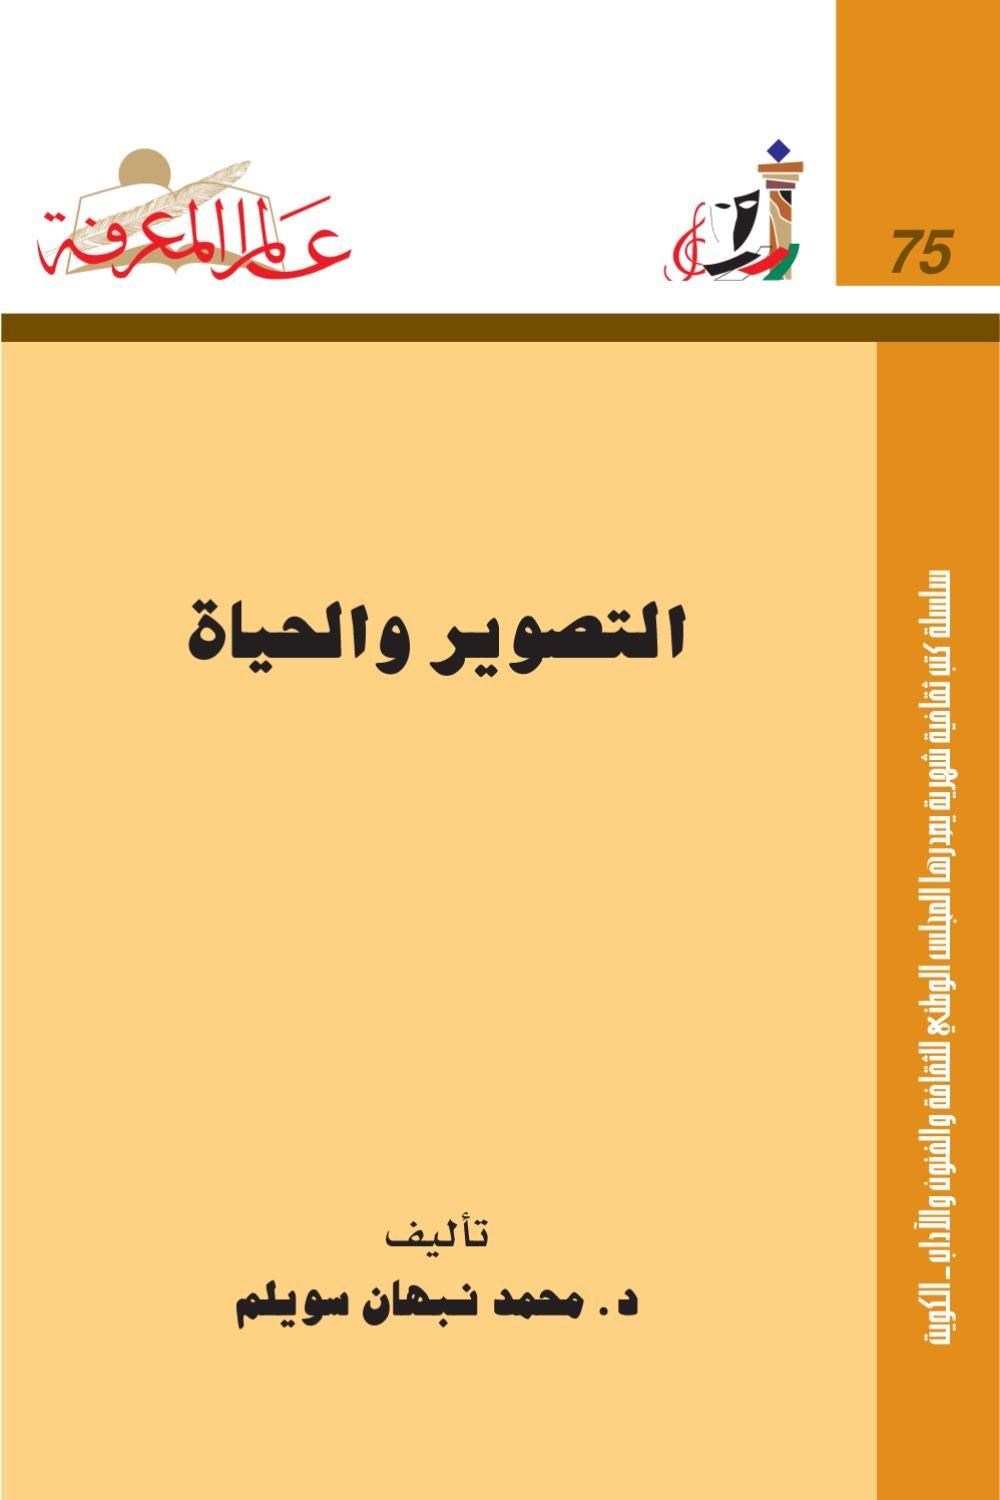 210b0990b 075 by Qmr alzman - issuu